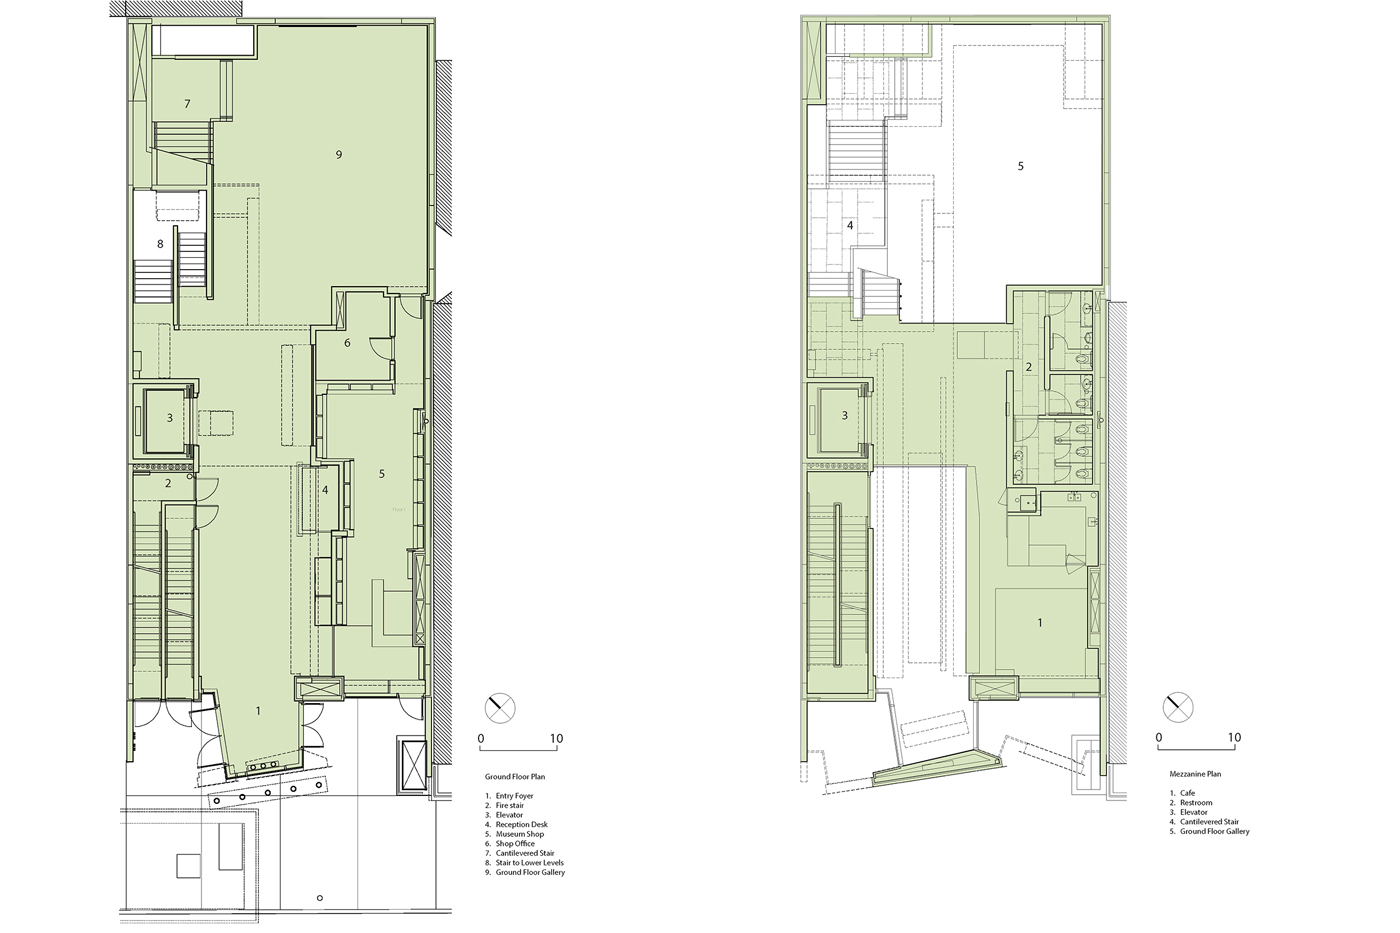 Iit college of architecture for Traditions of america floor plans